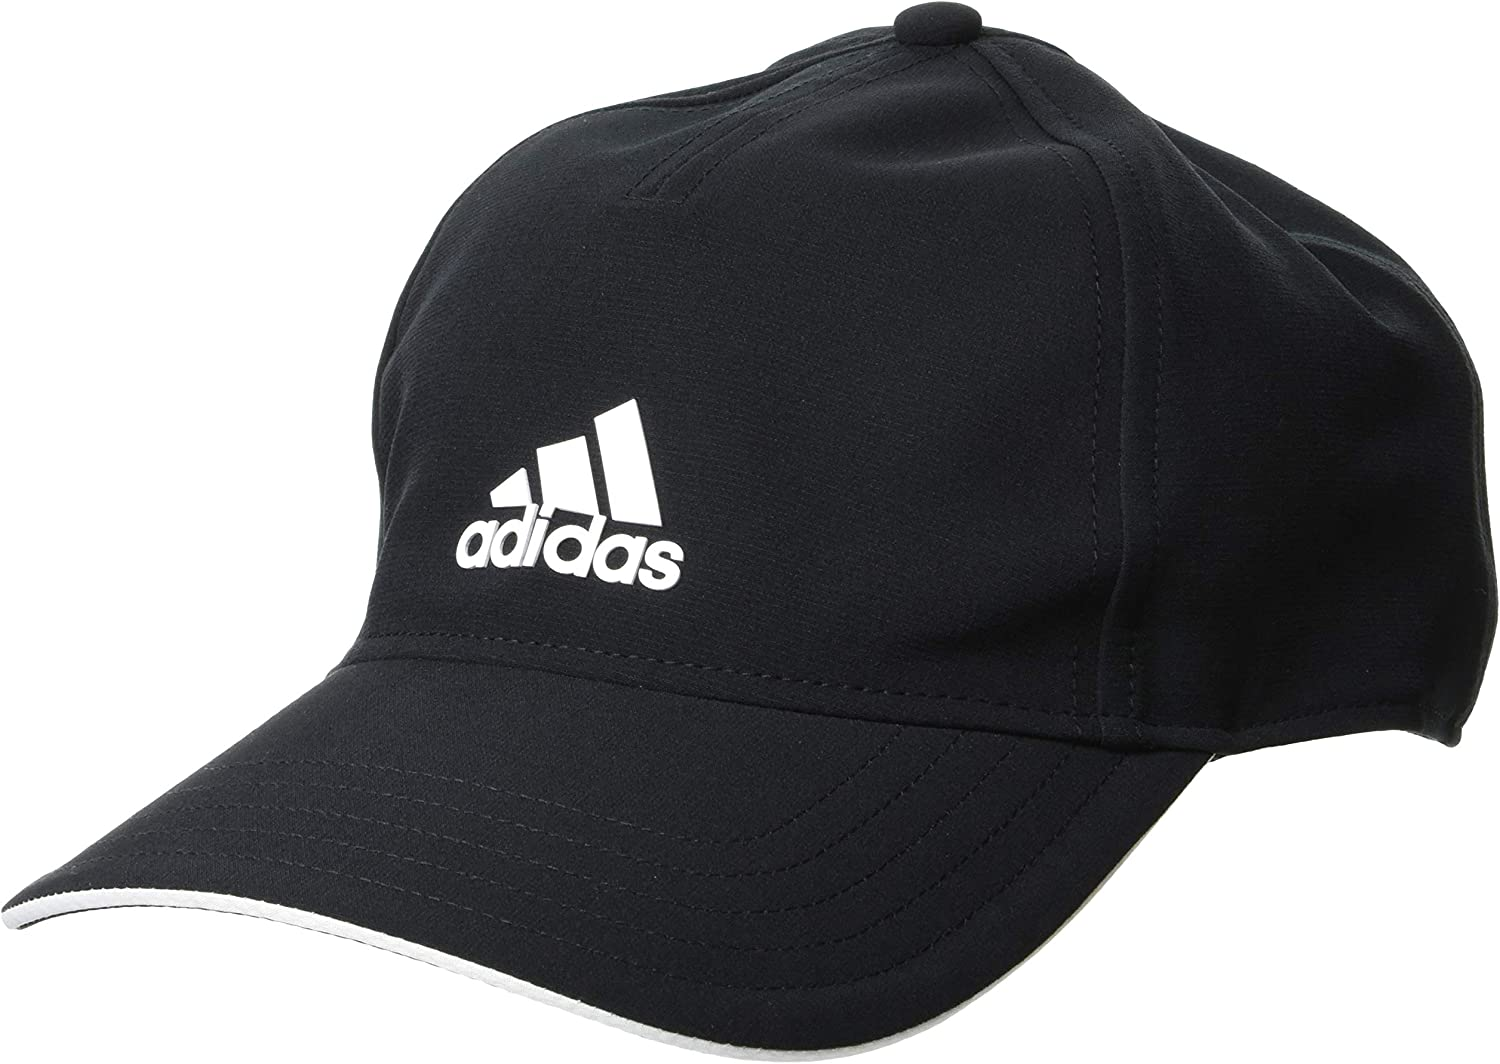 adidas Men's BB 4AT A.R, Black/White, One Size